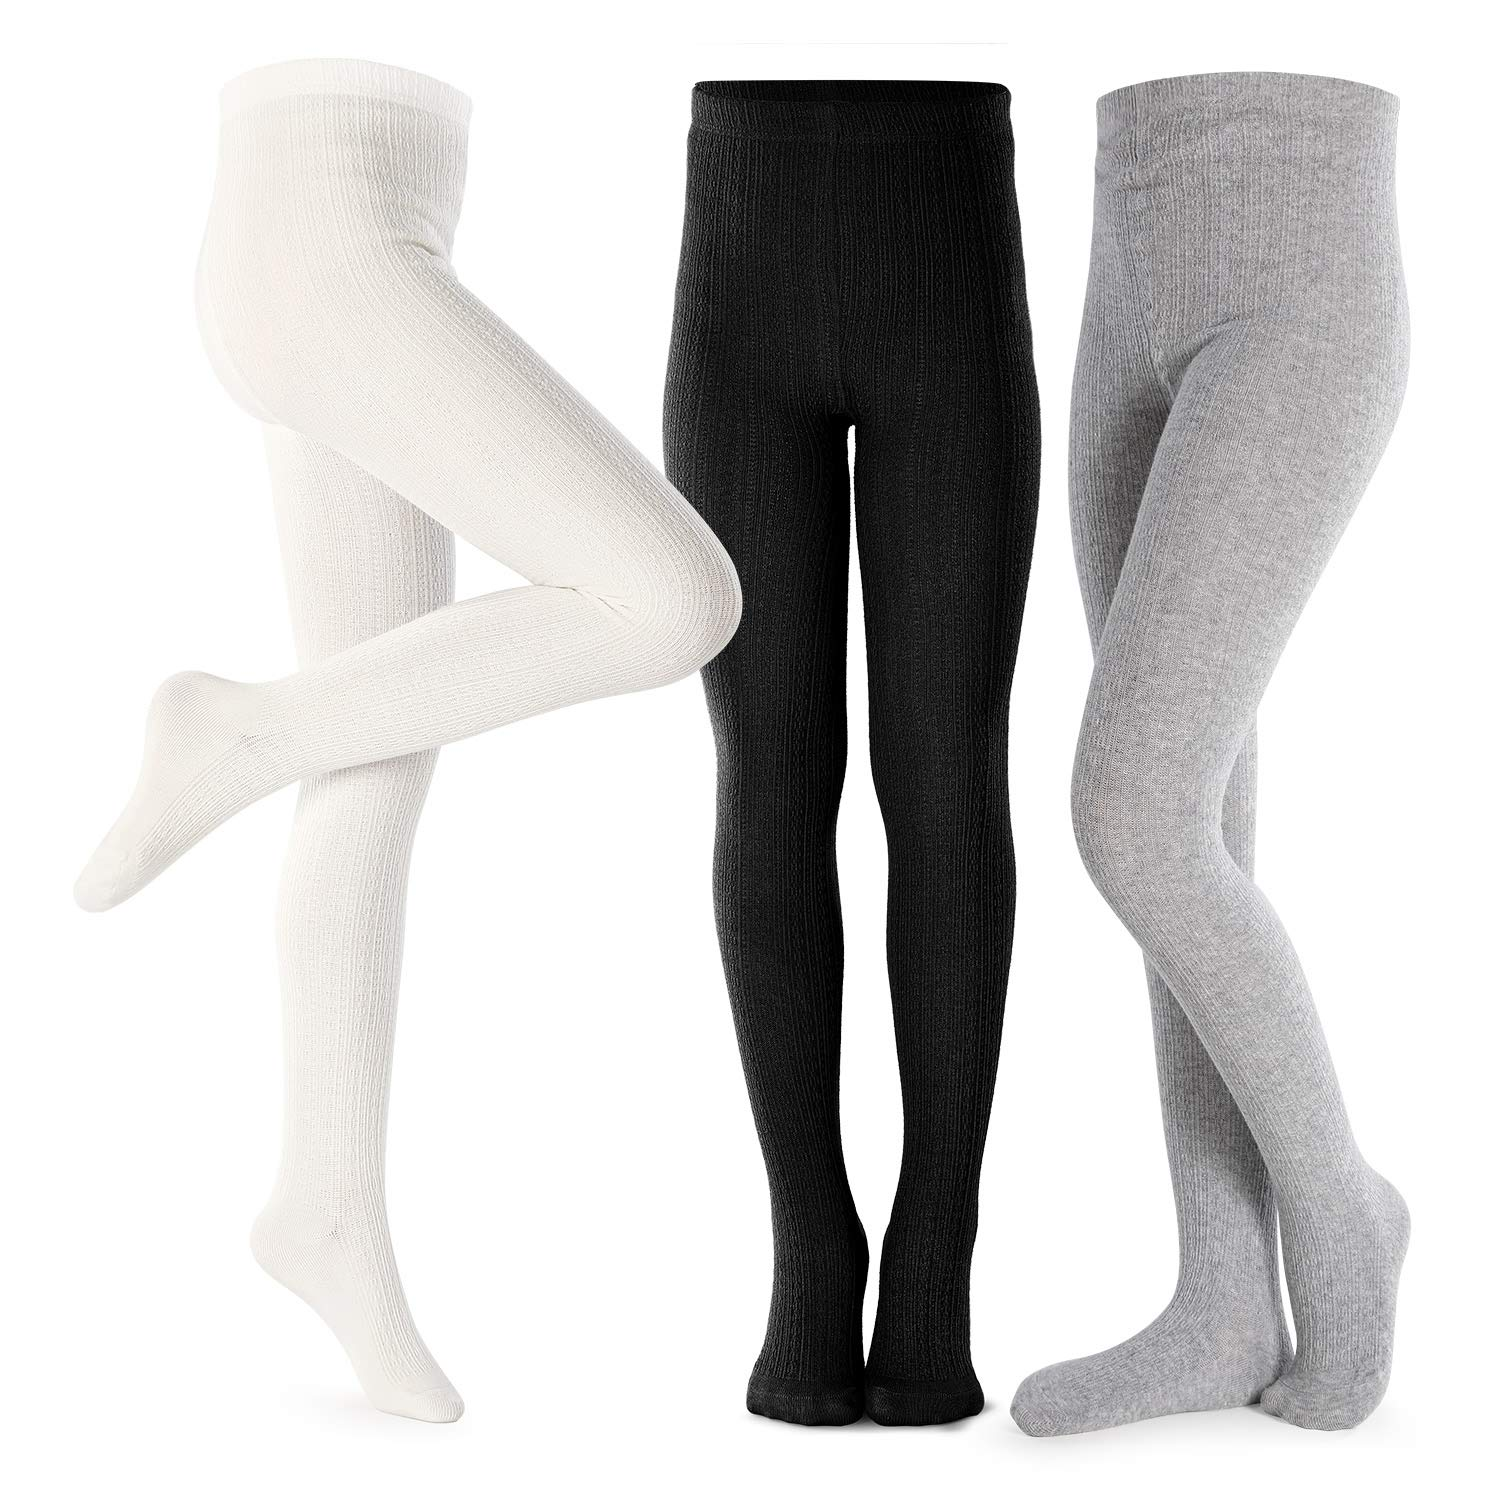 Girls Tights Toddler Cable Knit Cotton Footed Seamless Dance Ballet Baby Girls Leggings 3 Pack